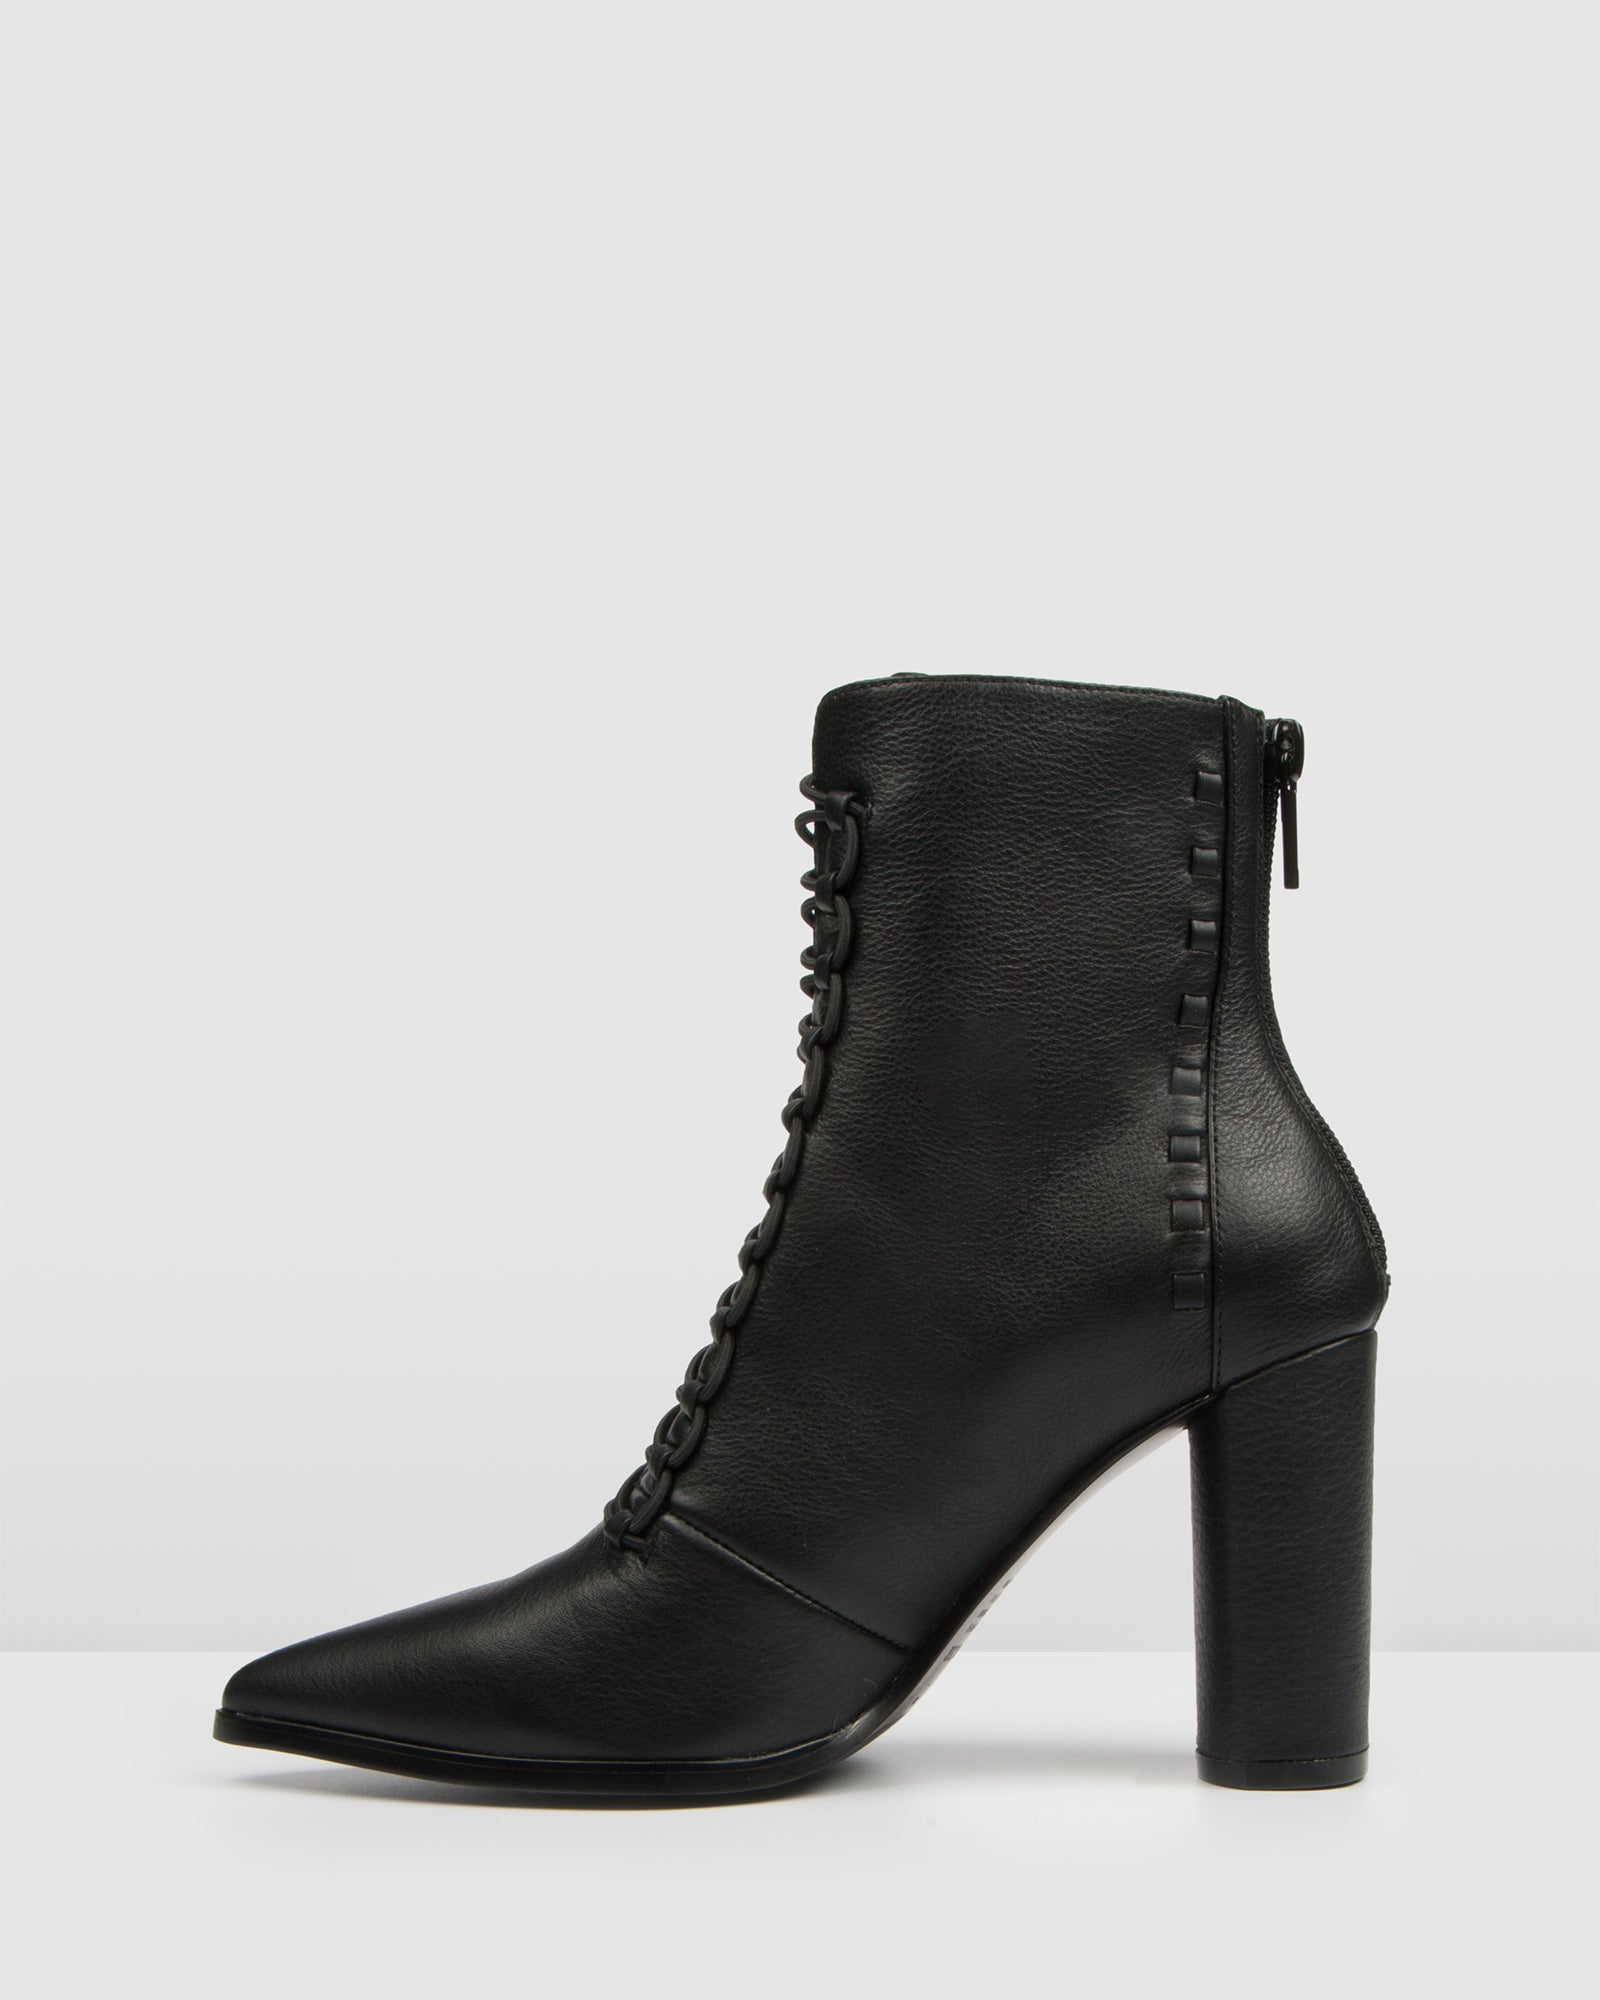 TEE HIGH HEEL ANKLE BOOTS BLACK LEATHER